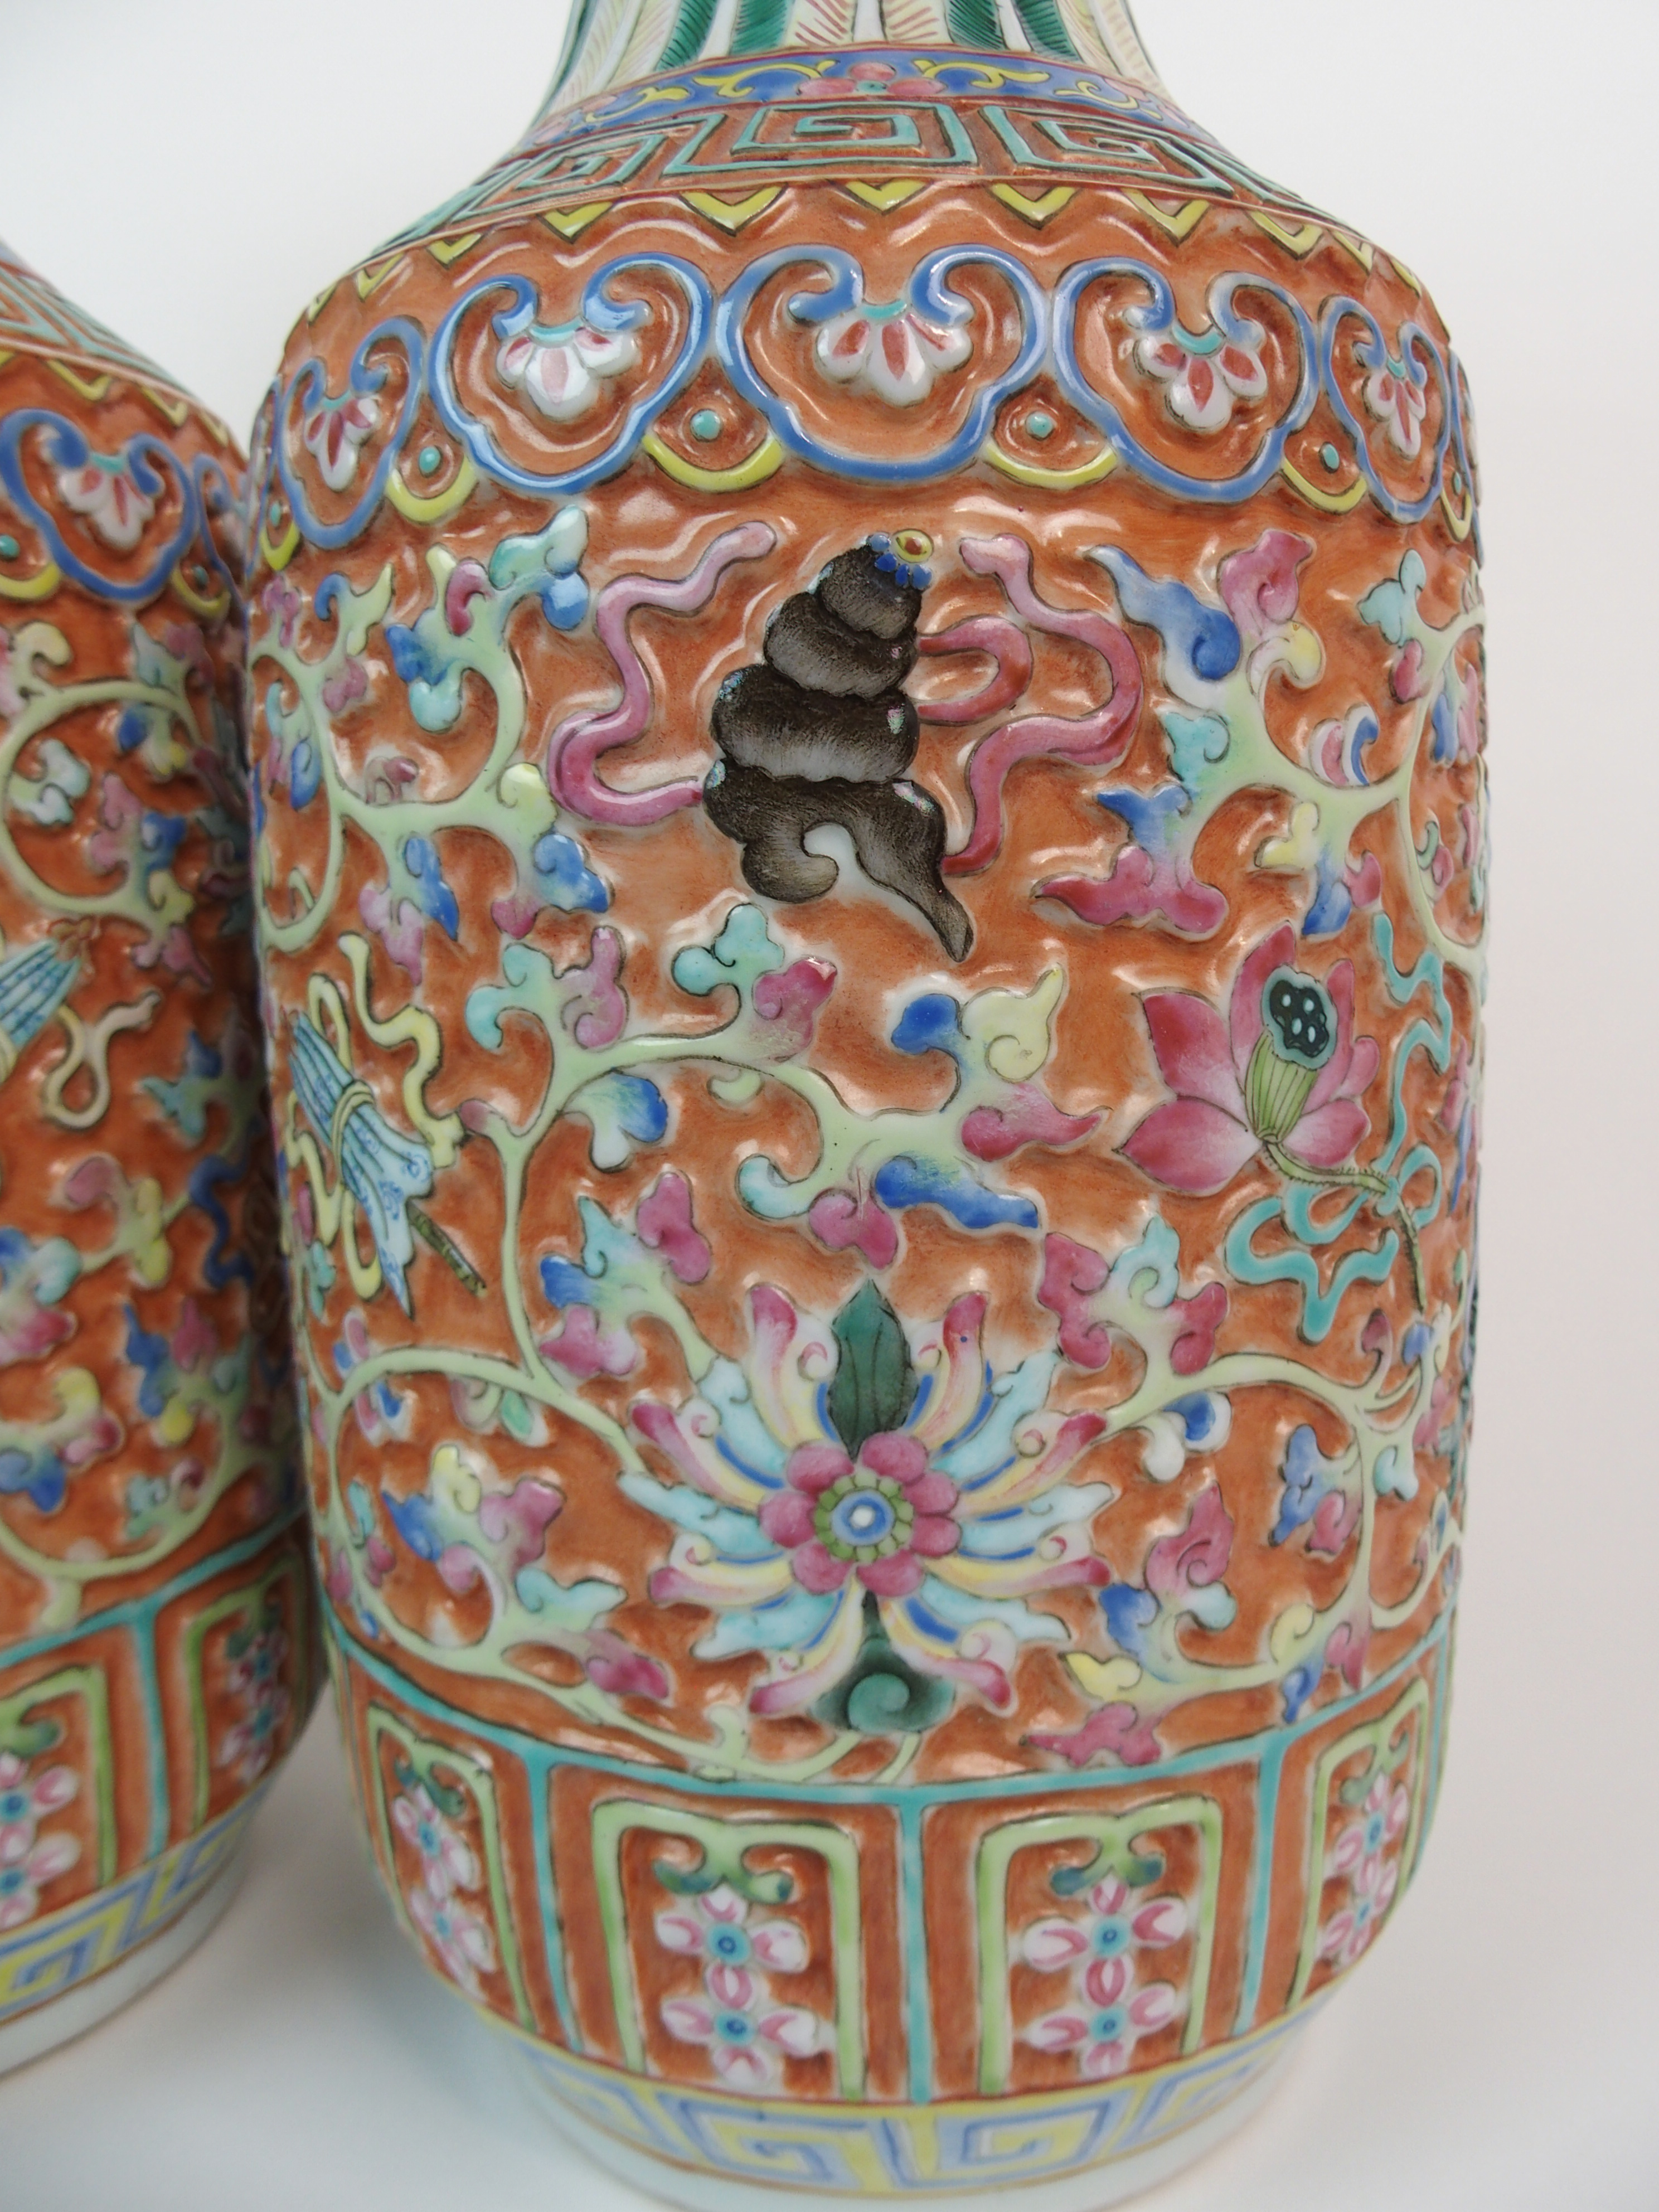 Lot 29 - A PAIR OF CANTON RELIEF MOULDED BALUSTER VASES decorated with precious symbols within key pattern